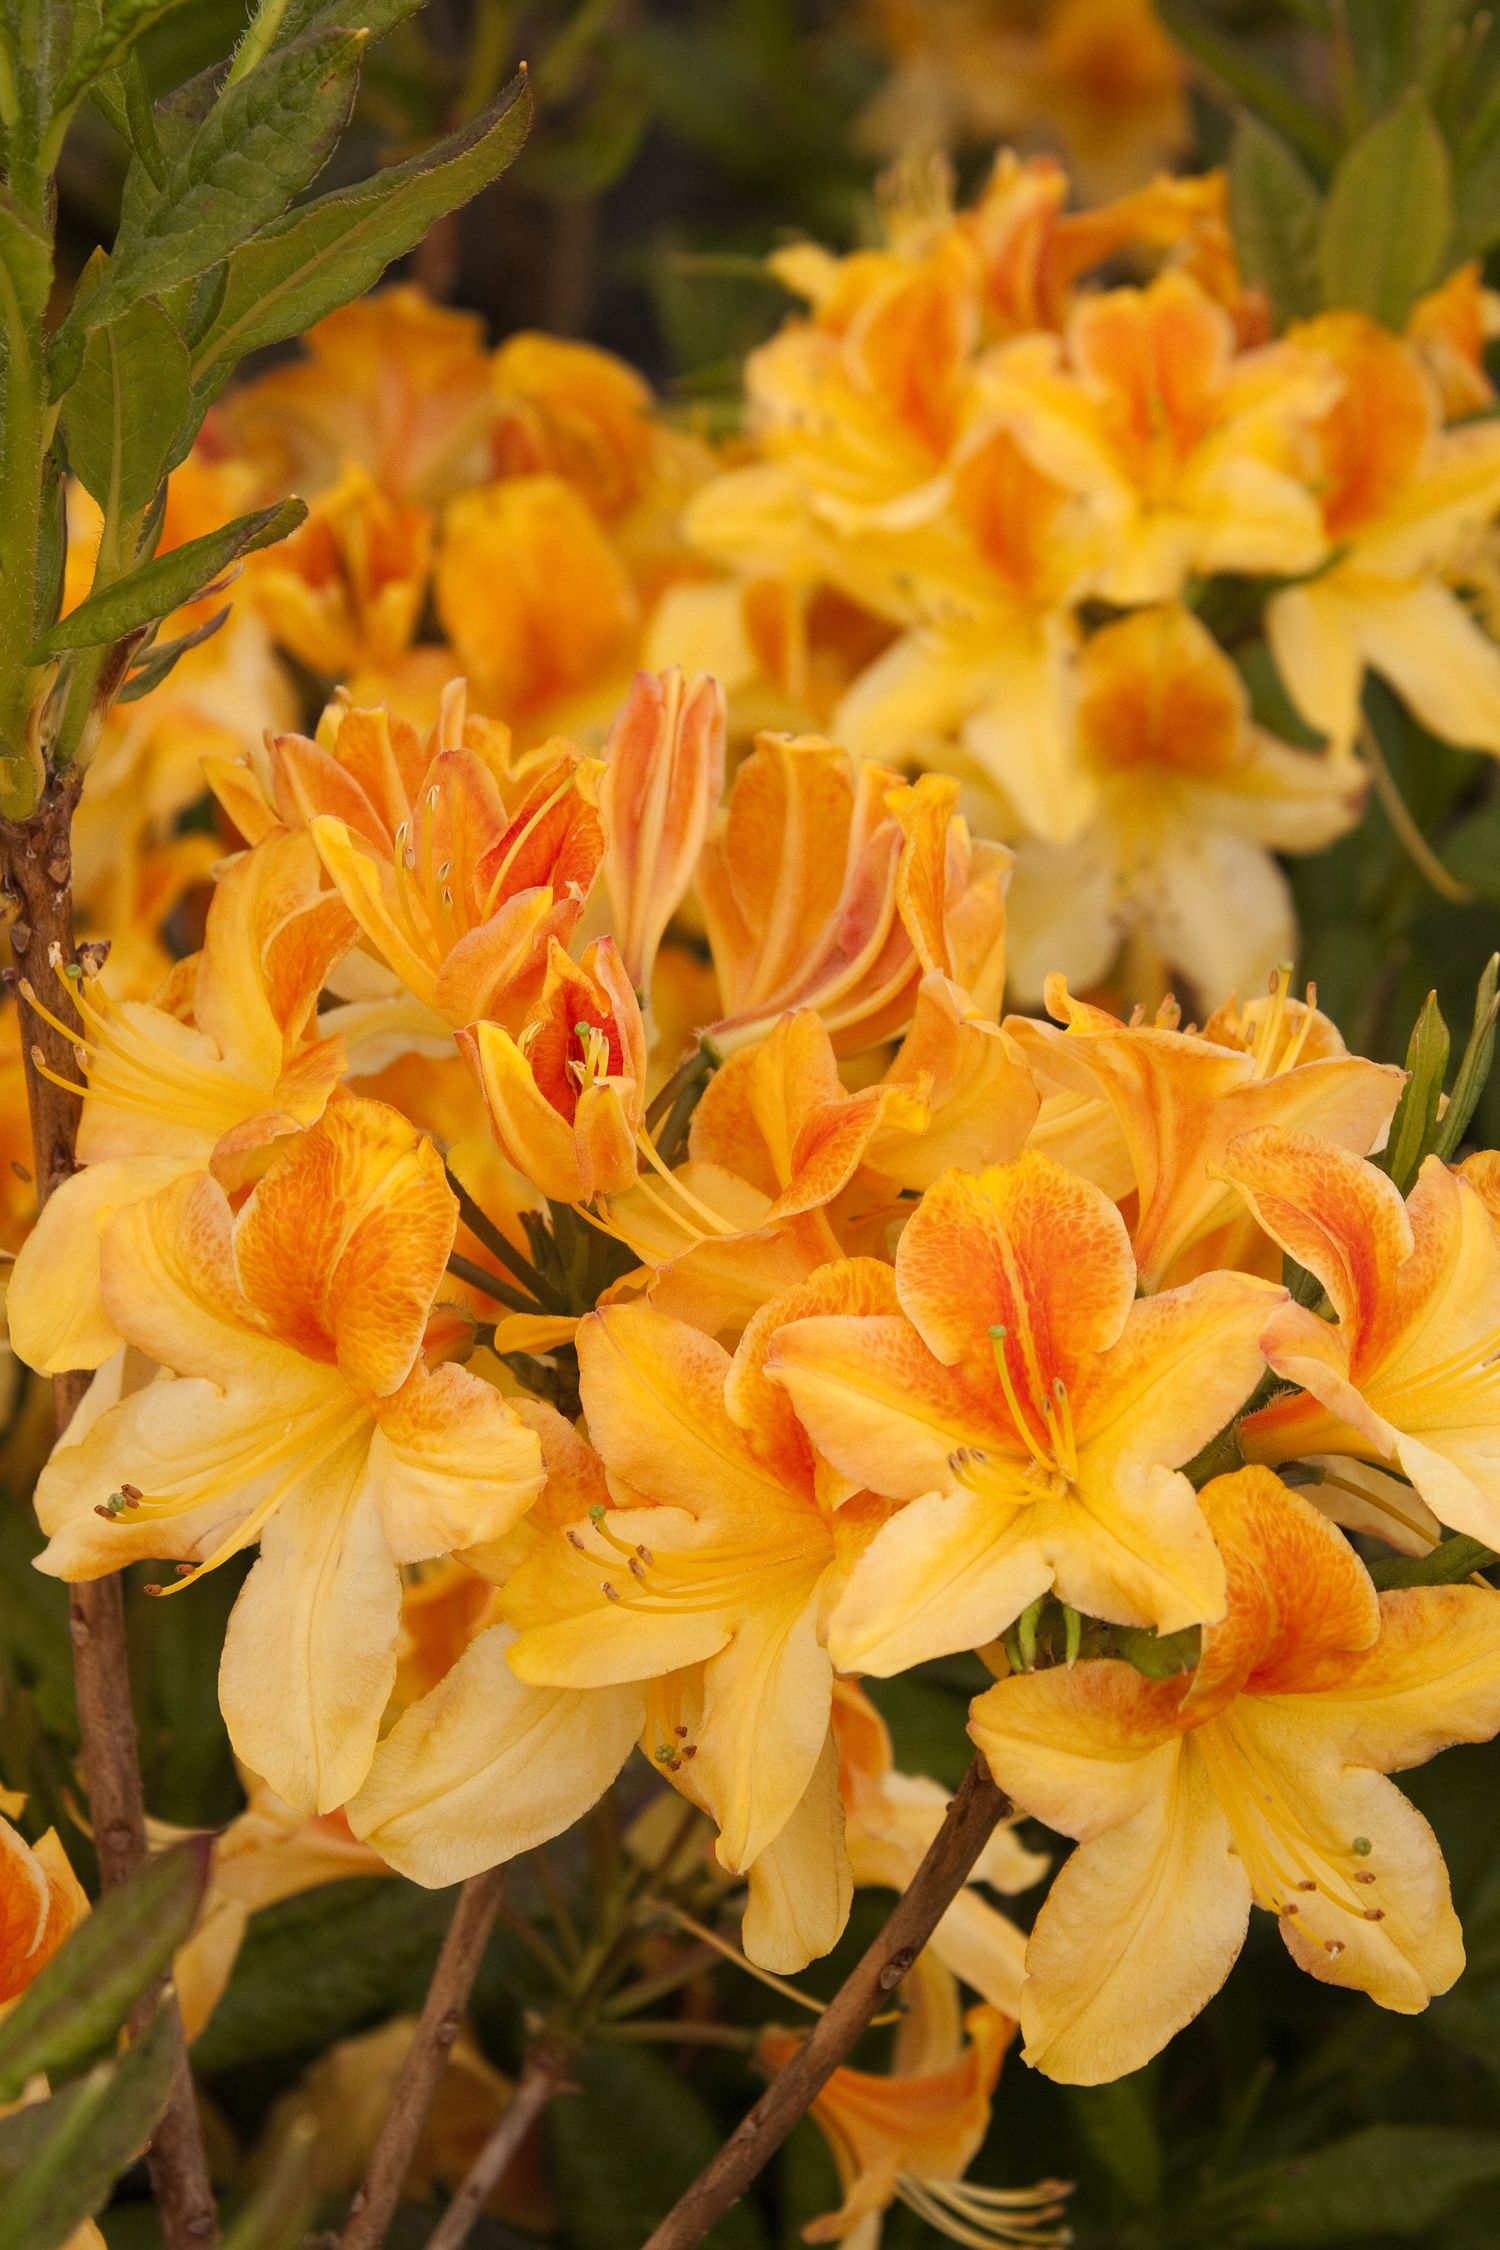 Golden Flare Azalea Is An Extremely Hardy Selection That Produces A Massive Display Of Vivid Yellow Single Blooms With A Red Plants Azaleas Landscaping Azaleas